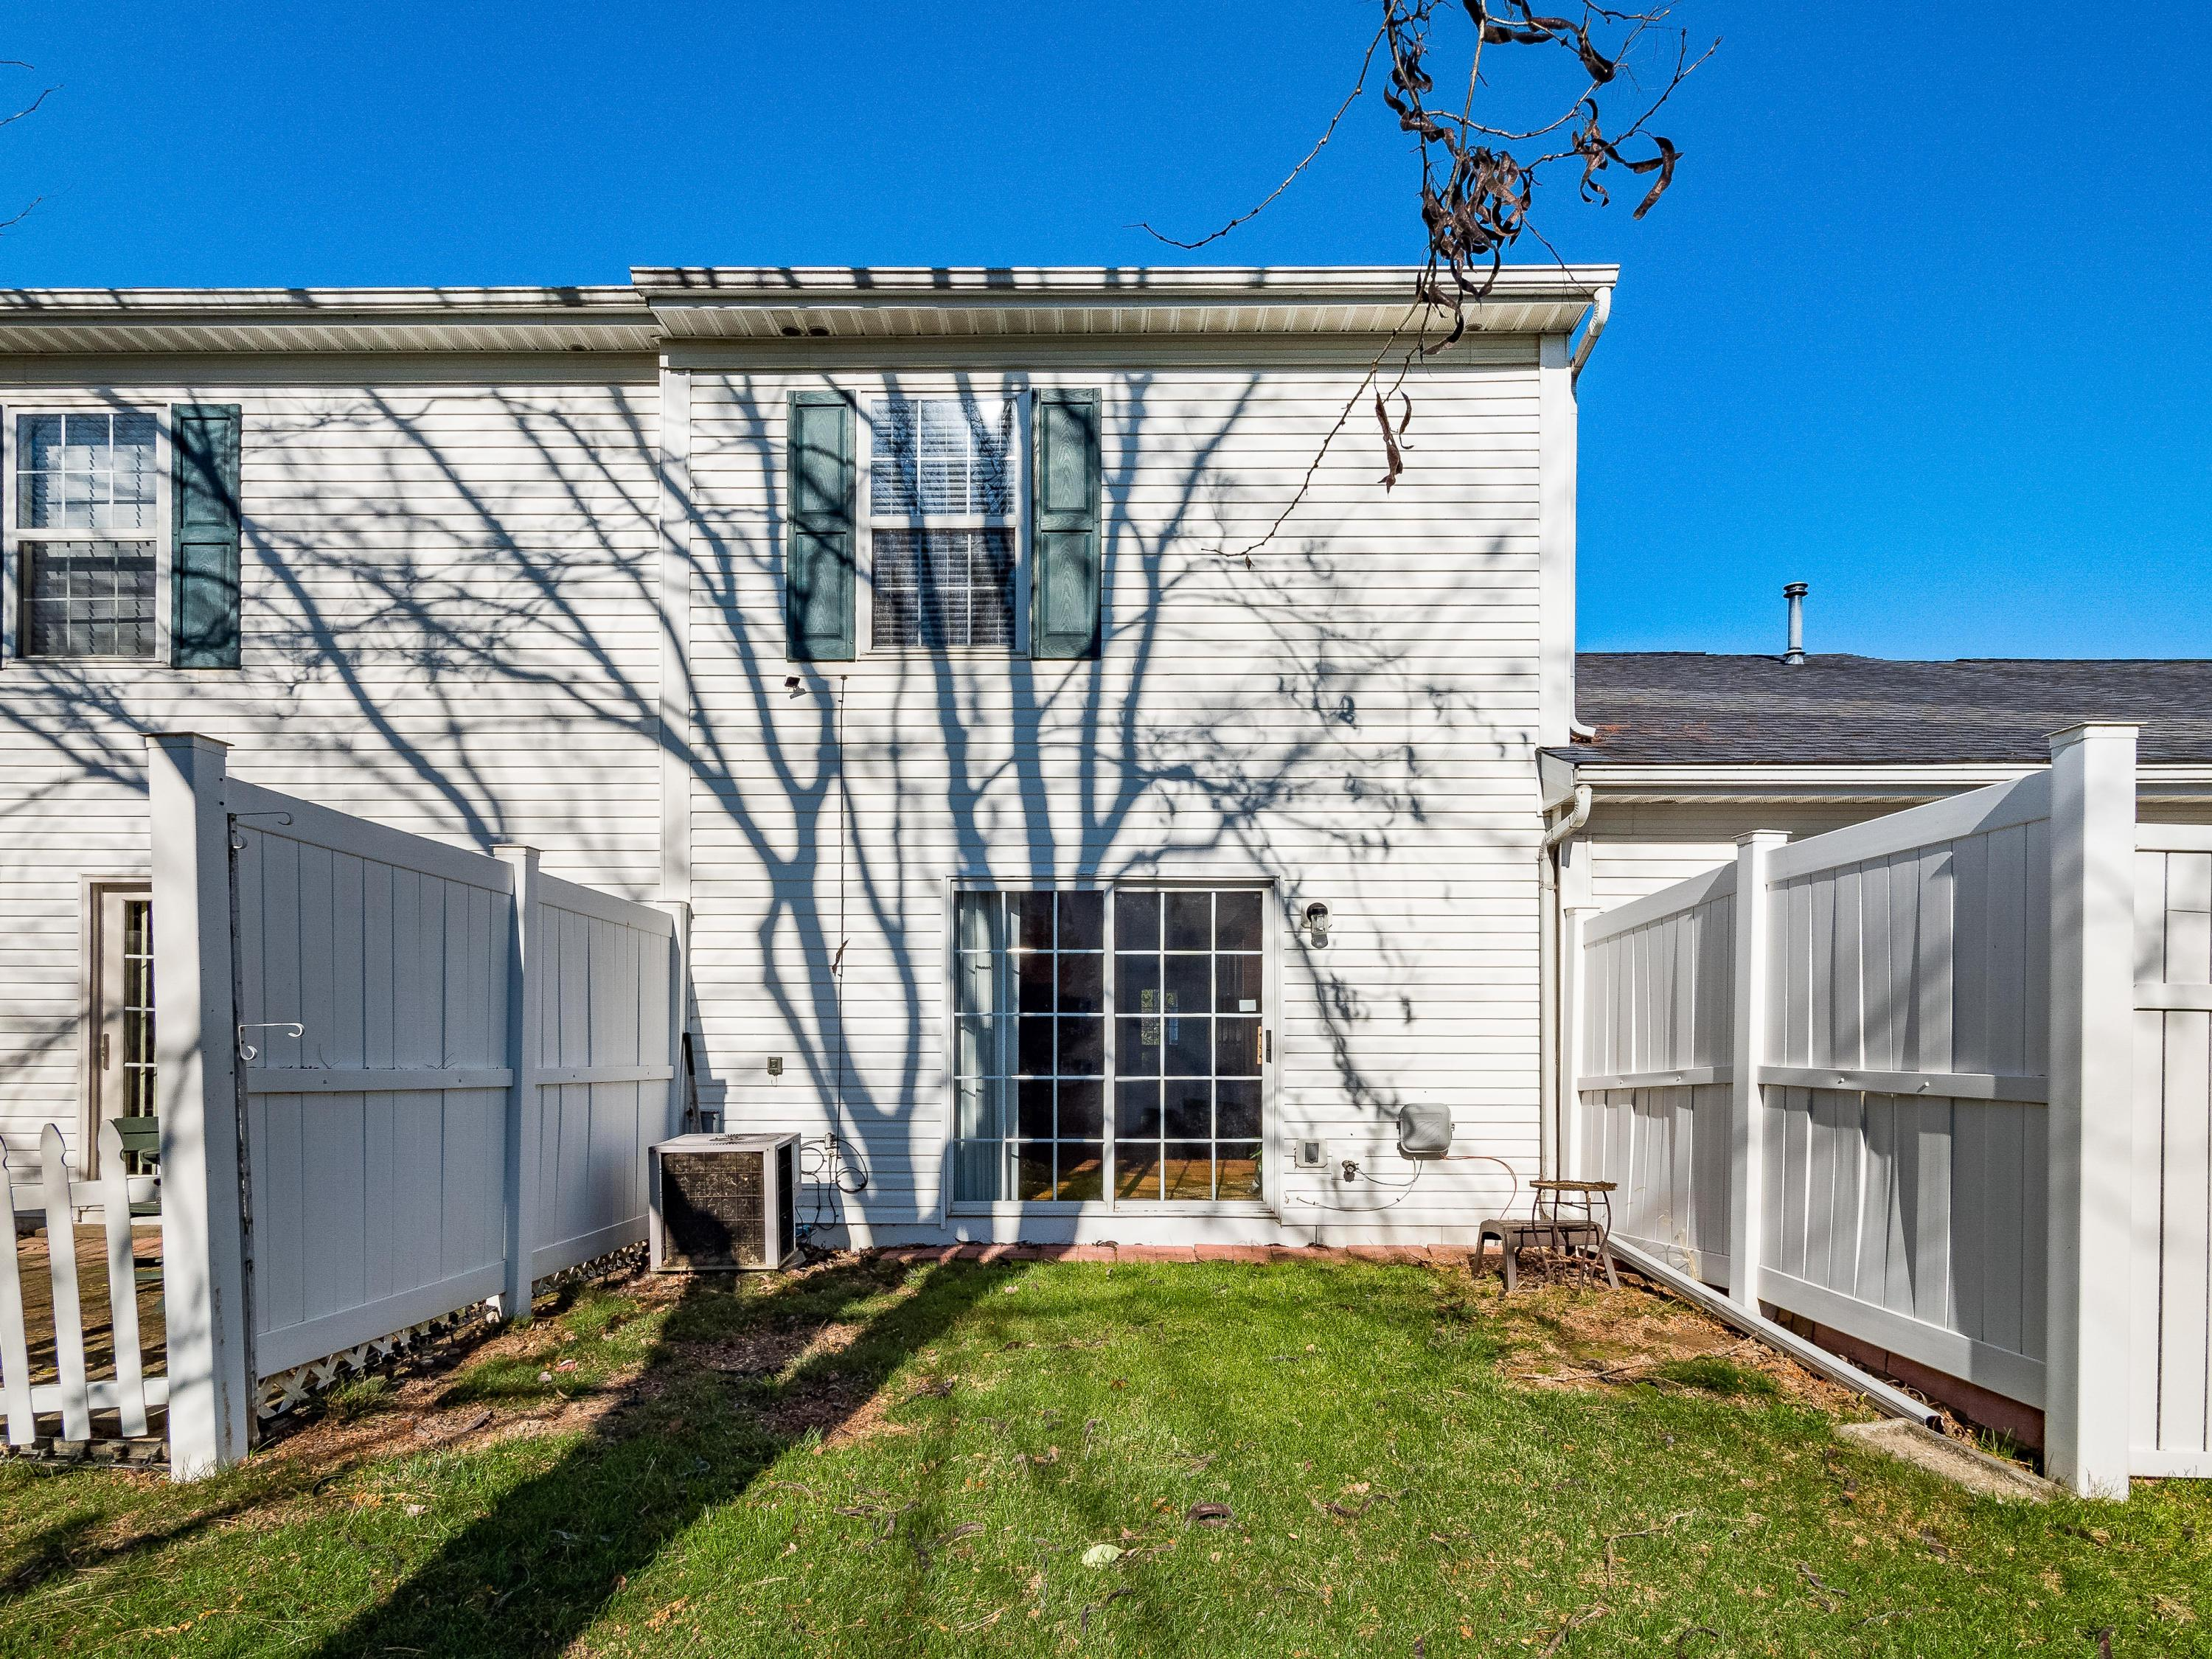 6693 Axtel Drive, Canal Winchester, Ohio 43110, 2 Bedrooms Bedrooms, ,3 BathroomsBathrooms,Residential,For Sale,Axtel,220040904